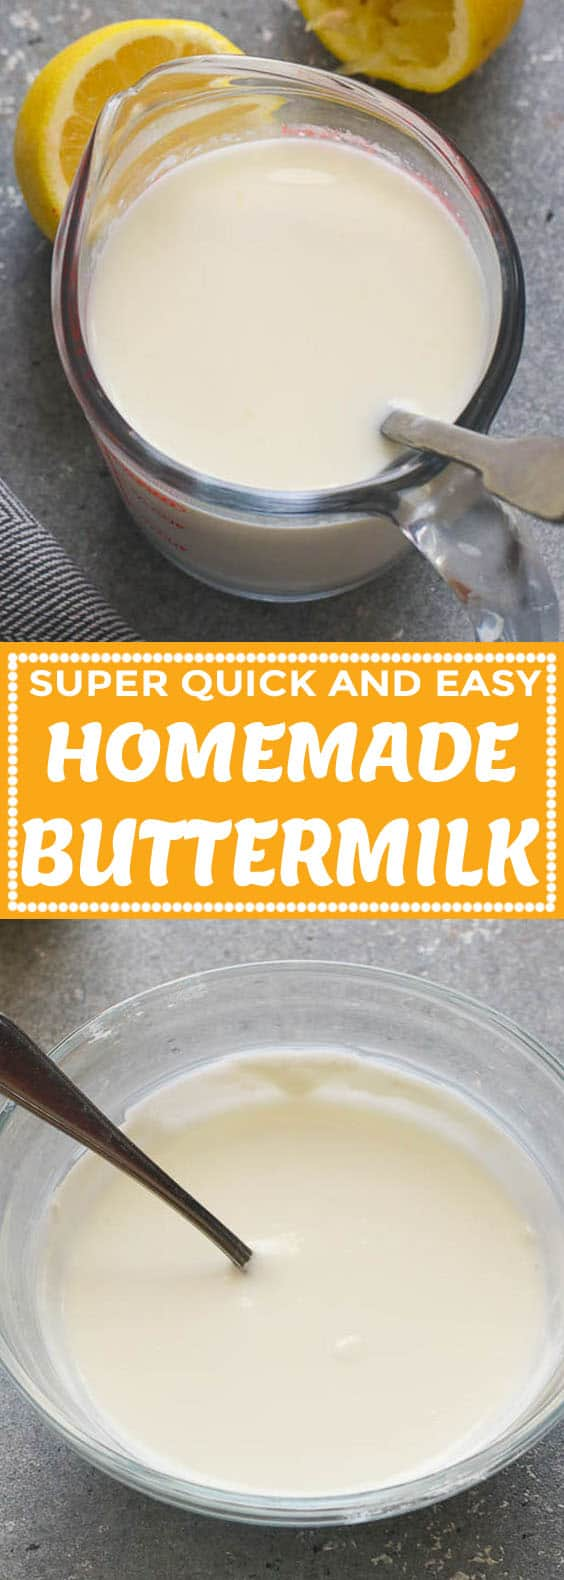 How to Make Buttermilk